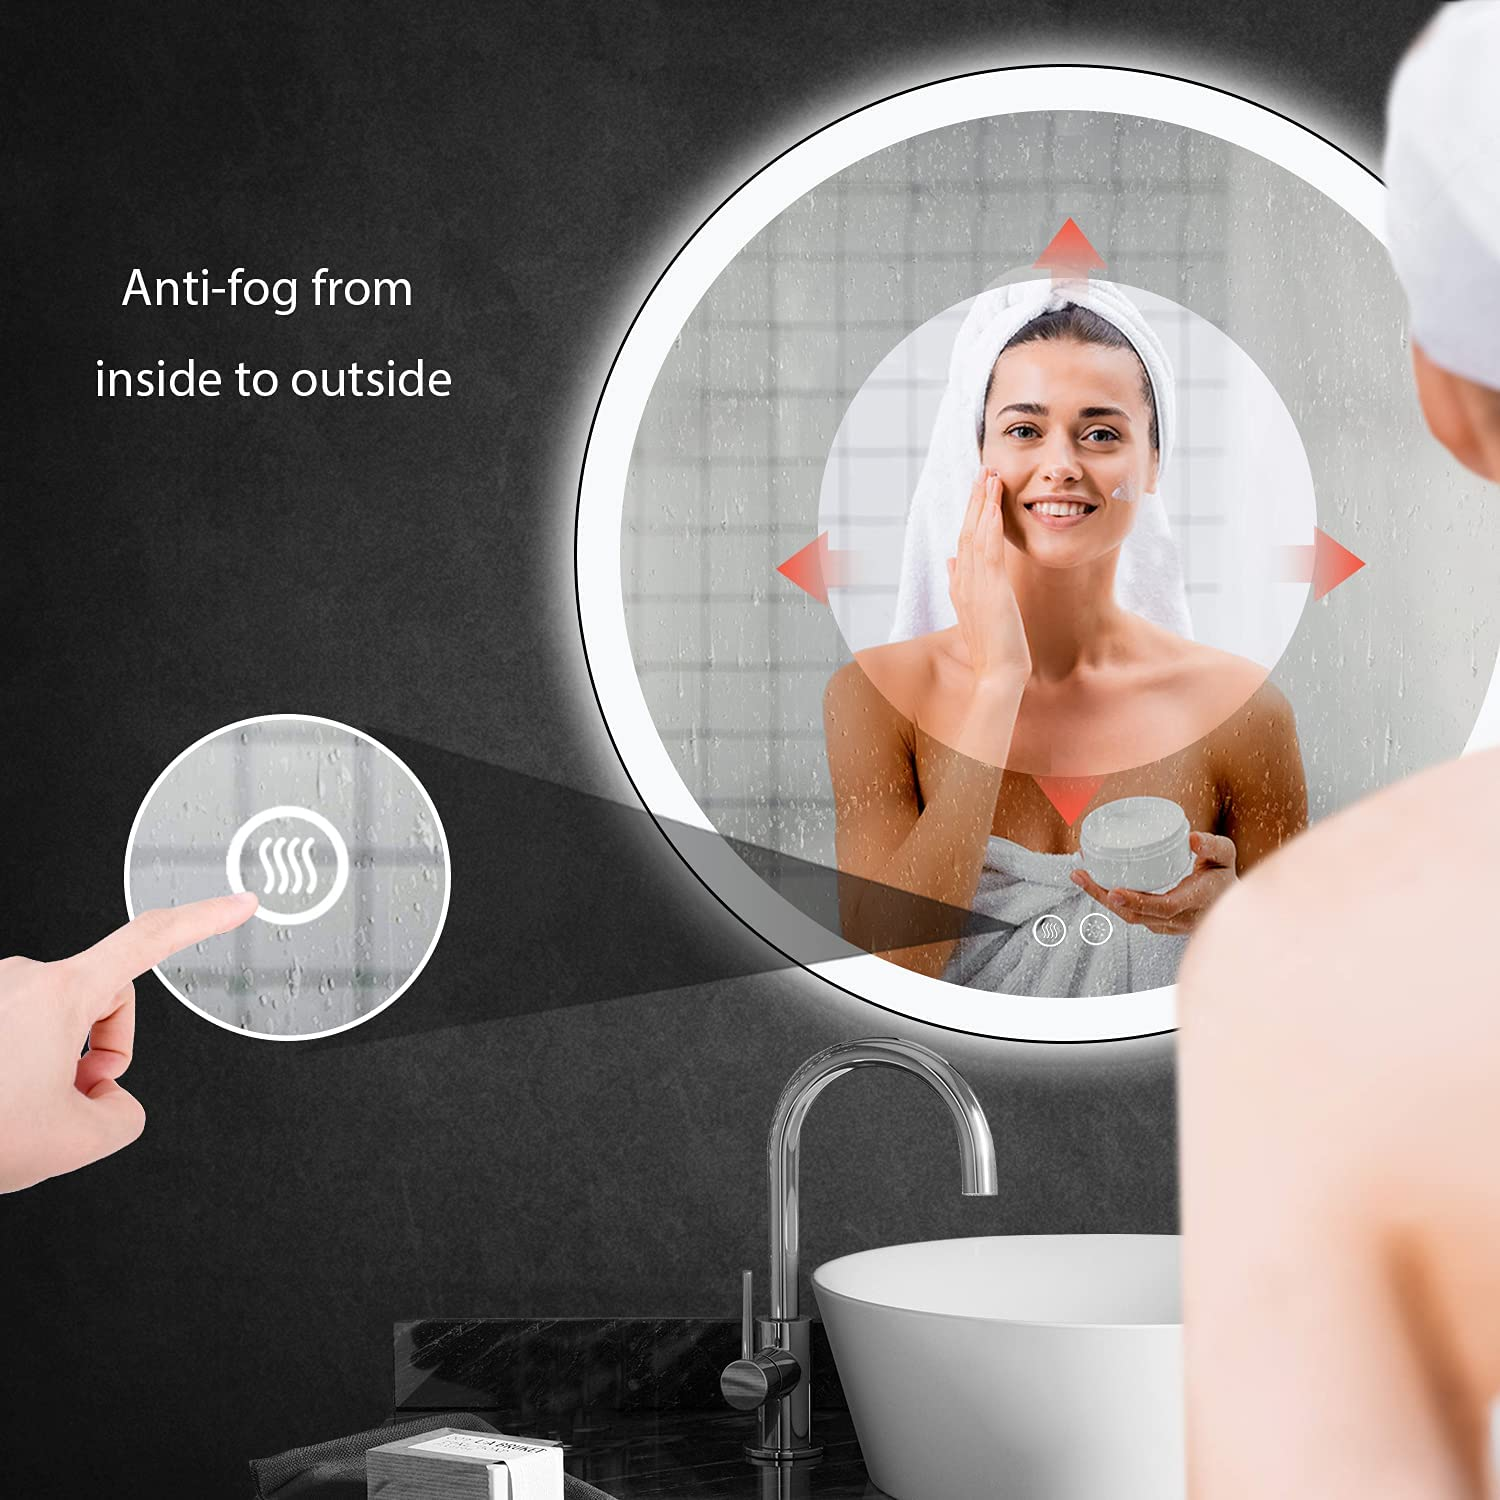 Buy 24 Inch Round Led Wall Mirror Black Framed Bathroom Vanity Mirror With Lights Anti Fog Dimmable Lighted Makeup Mirror Memory Touch Button Warm Light Daylight Cool White Online In Vietnam B08ryl9k52